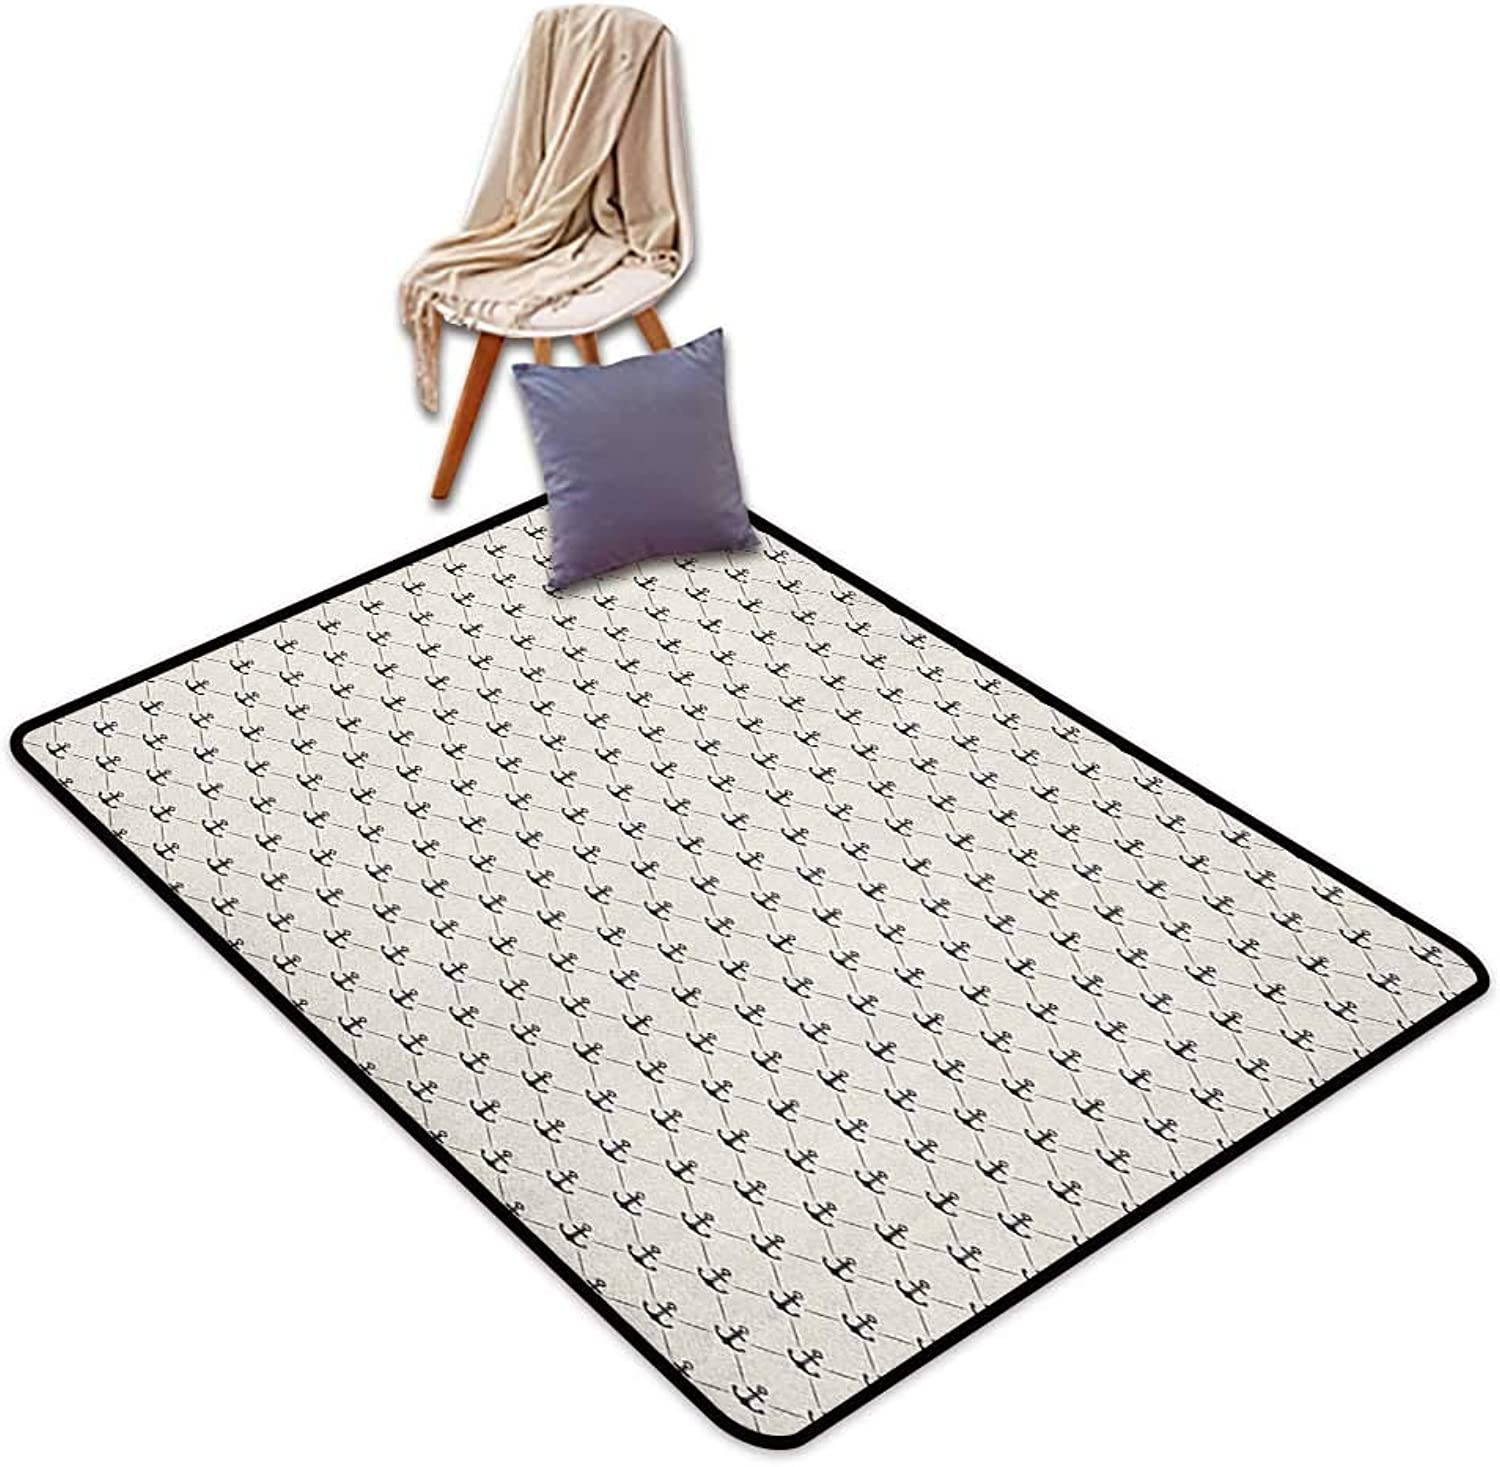 Oversized Floor Rug Anchor Abstract Retro Nautical Style Shape and Lines Monochrome Classical Modern Design Door Rug Increase W5'xL8'